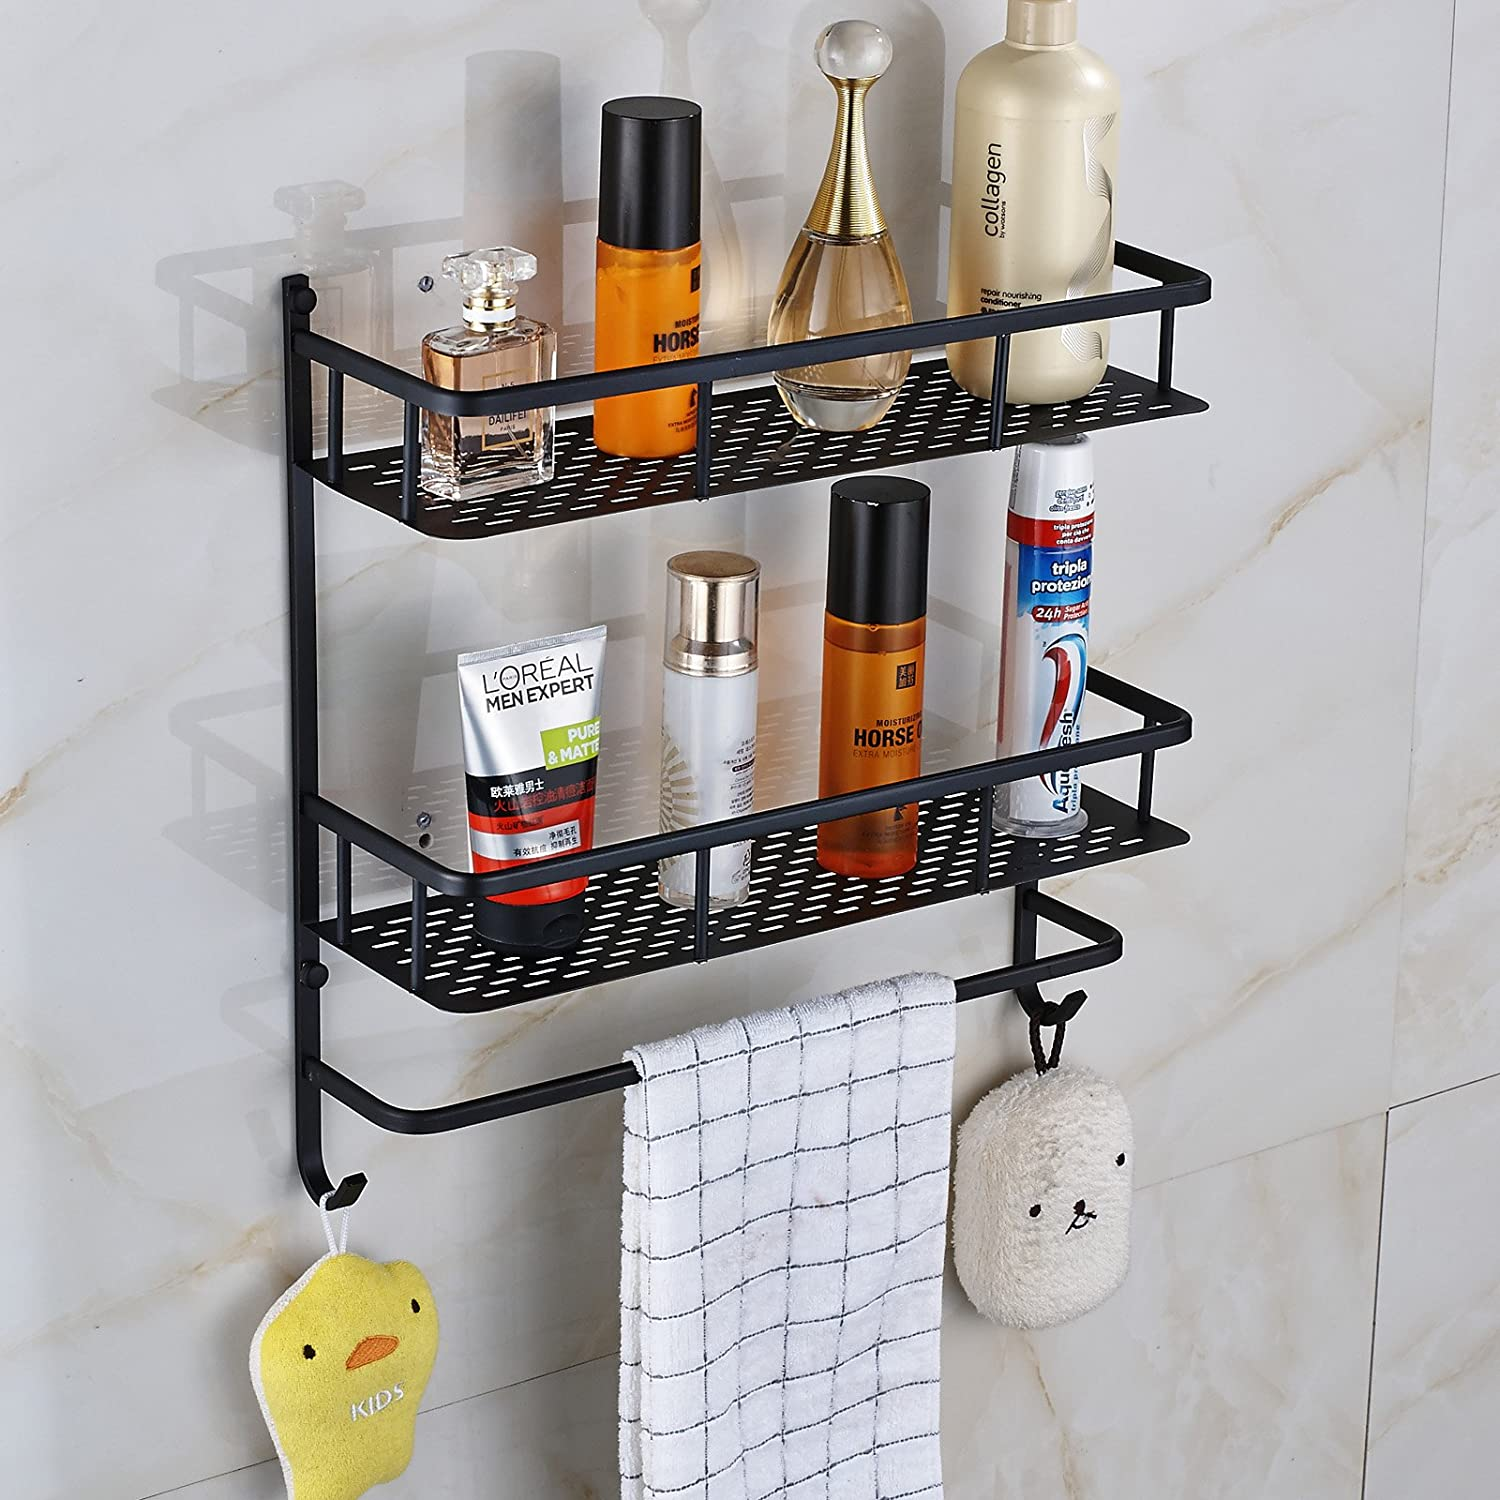 (Double-tier) Rozin Oil Rubbed Bronze Bathroom Storage Holder Dual Tier Cosmetic Shelf with Towel Bar B00MTHMV7CDouble-tier